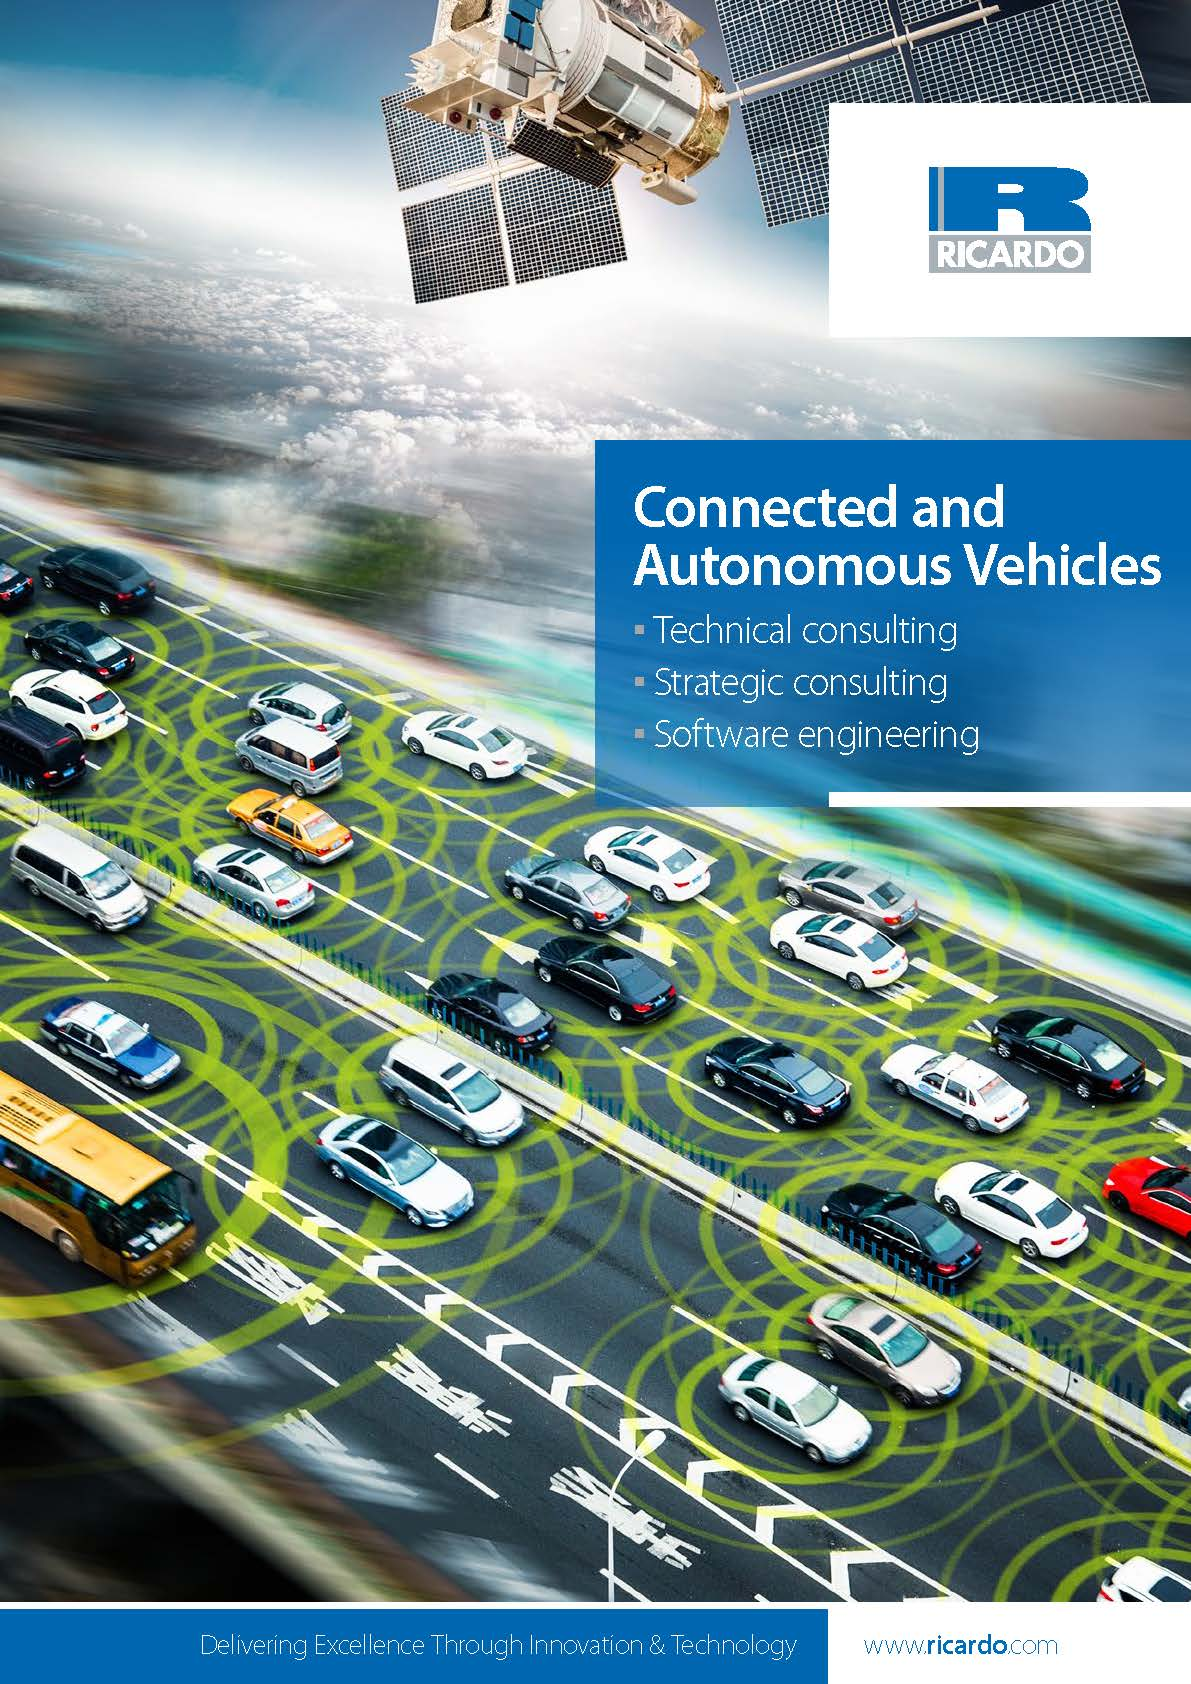 Connected and Autonomous Vehicles